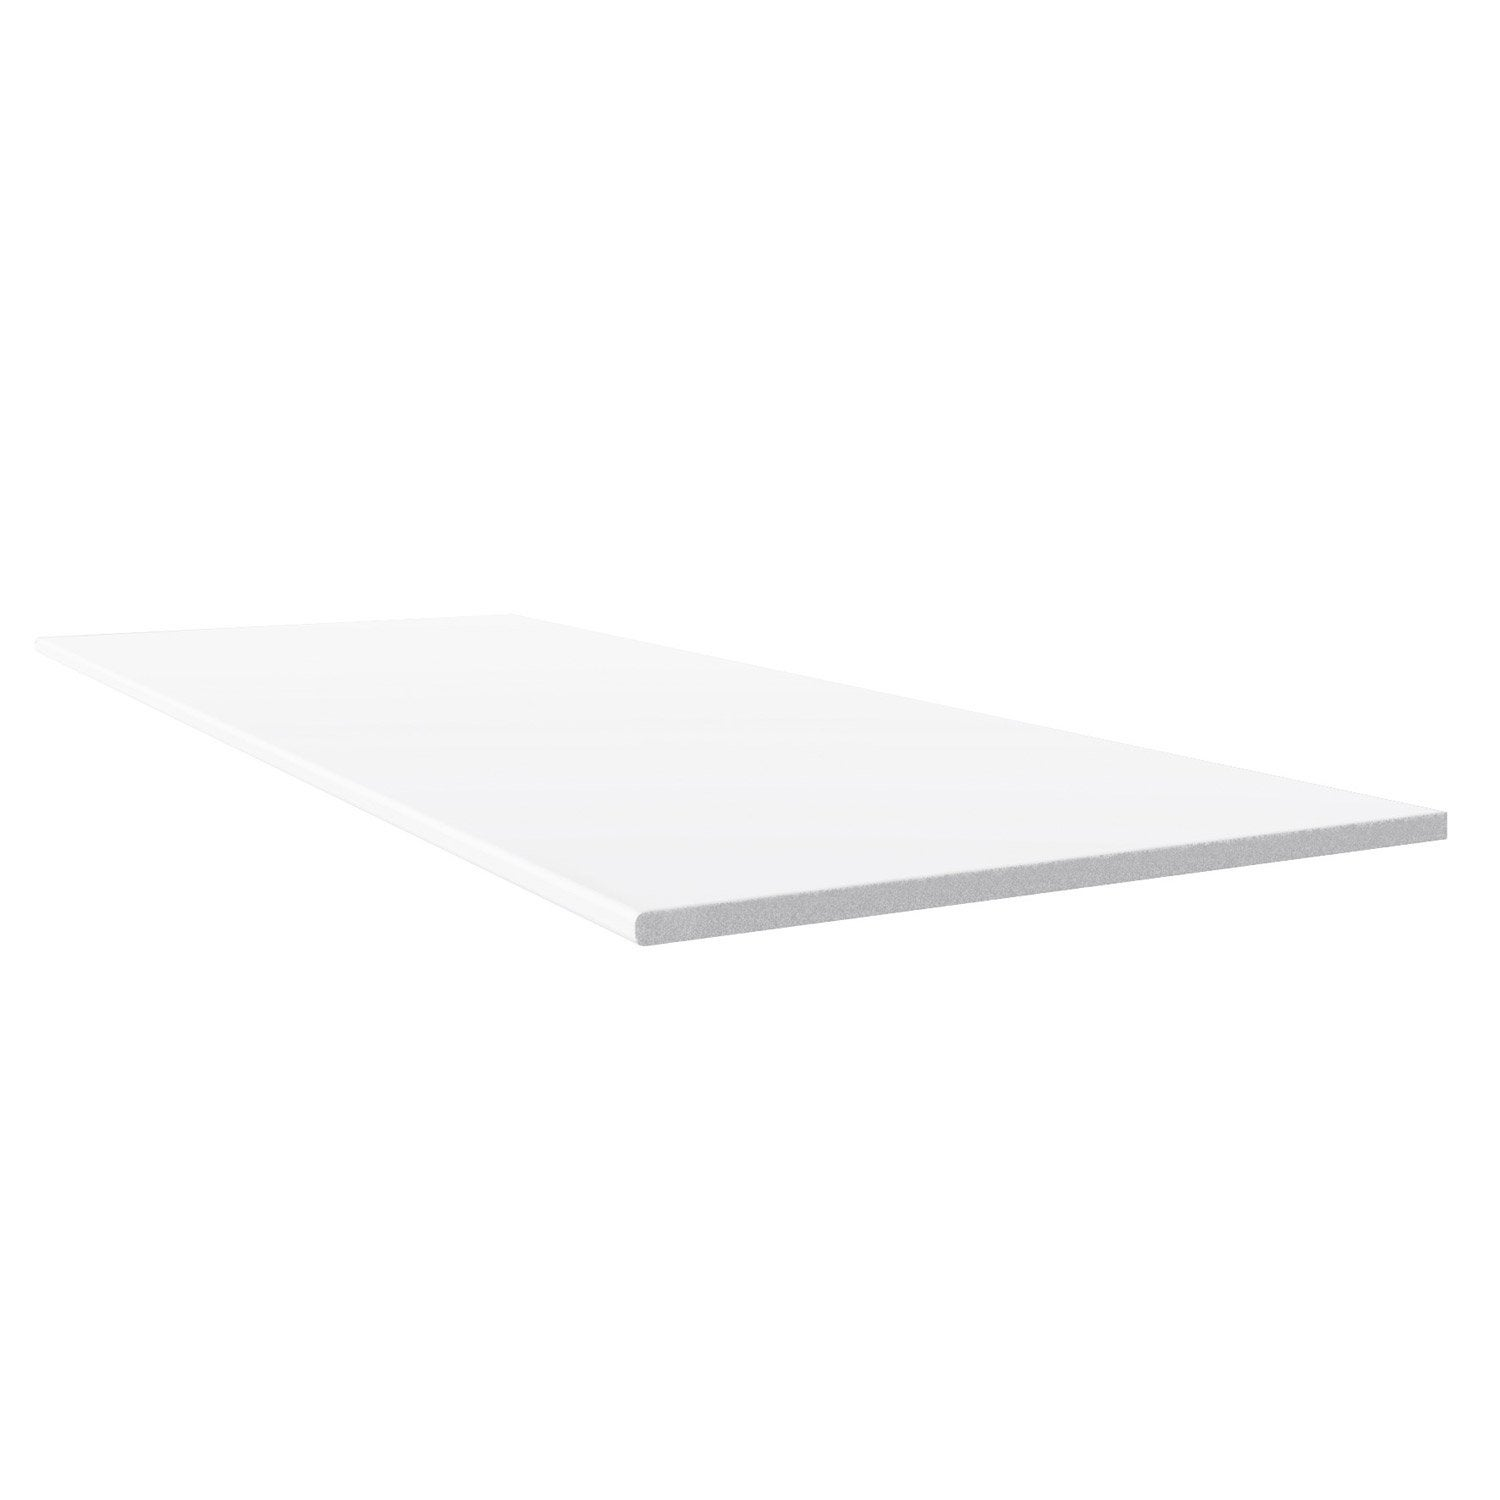 Planche plate pvc freefoam faza solid blanc 9003 3 m - Decoupe planche leroy merlin ...